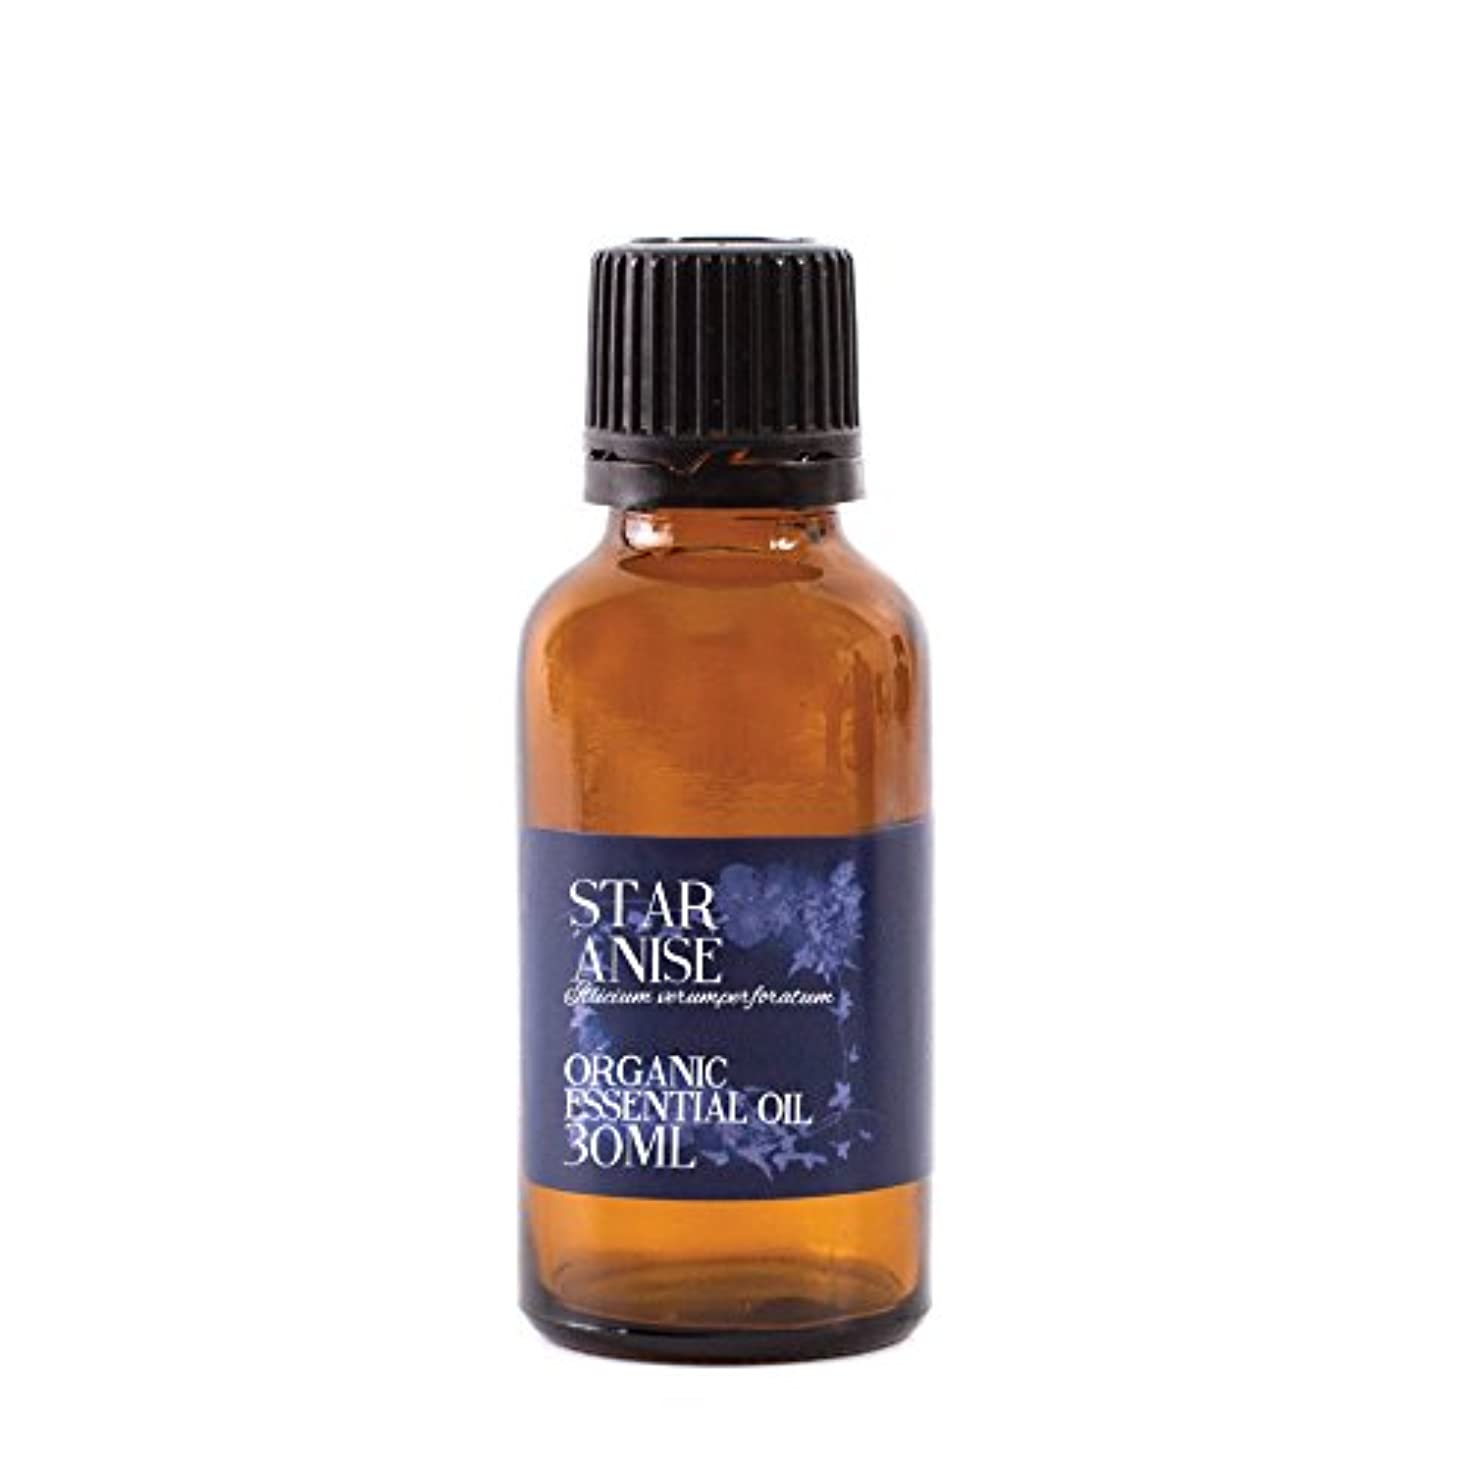 Mystic Moments | Star Anise Organic Essential Oil - 30ml - 100% Pure